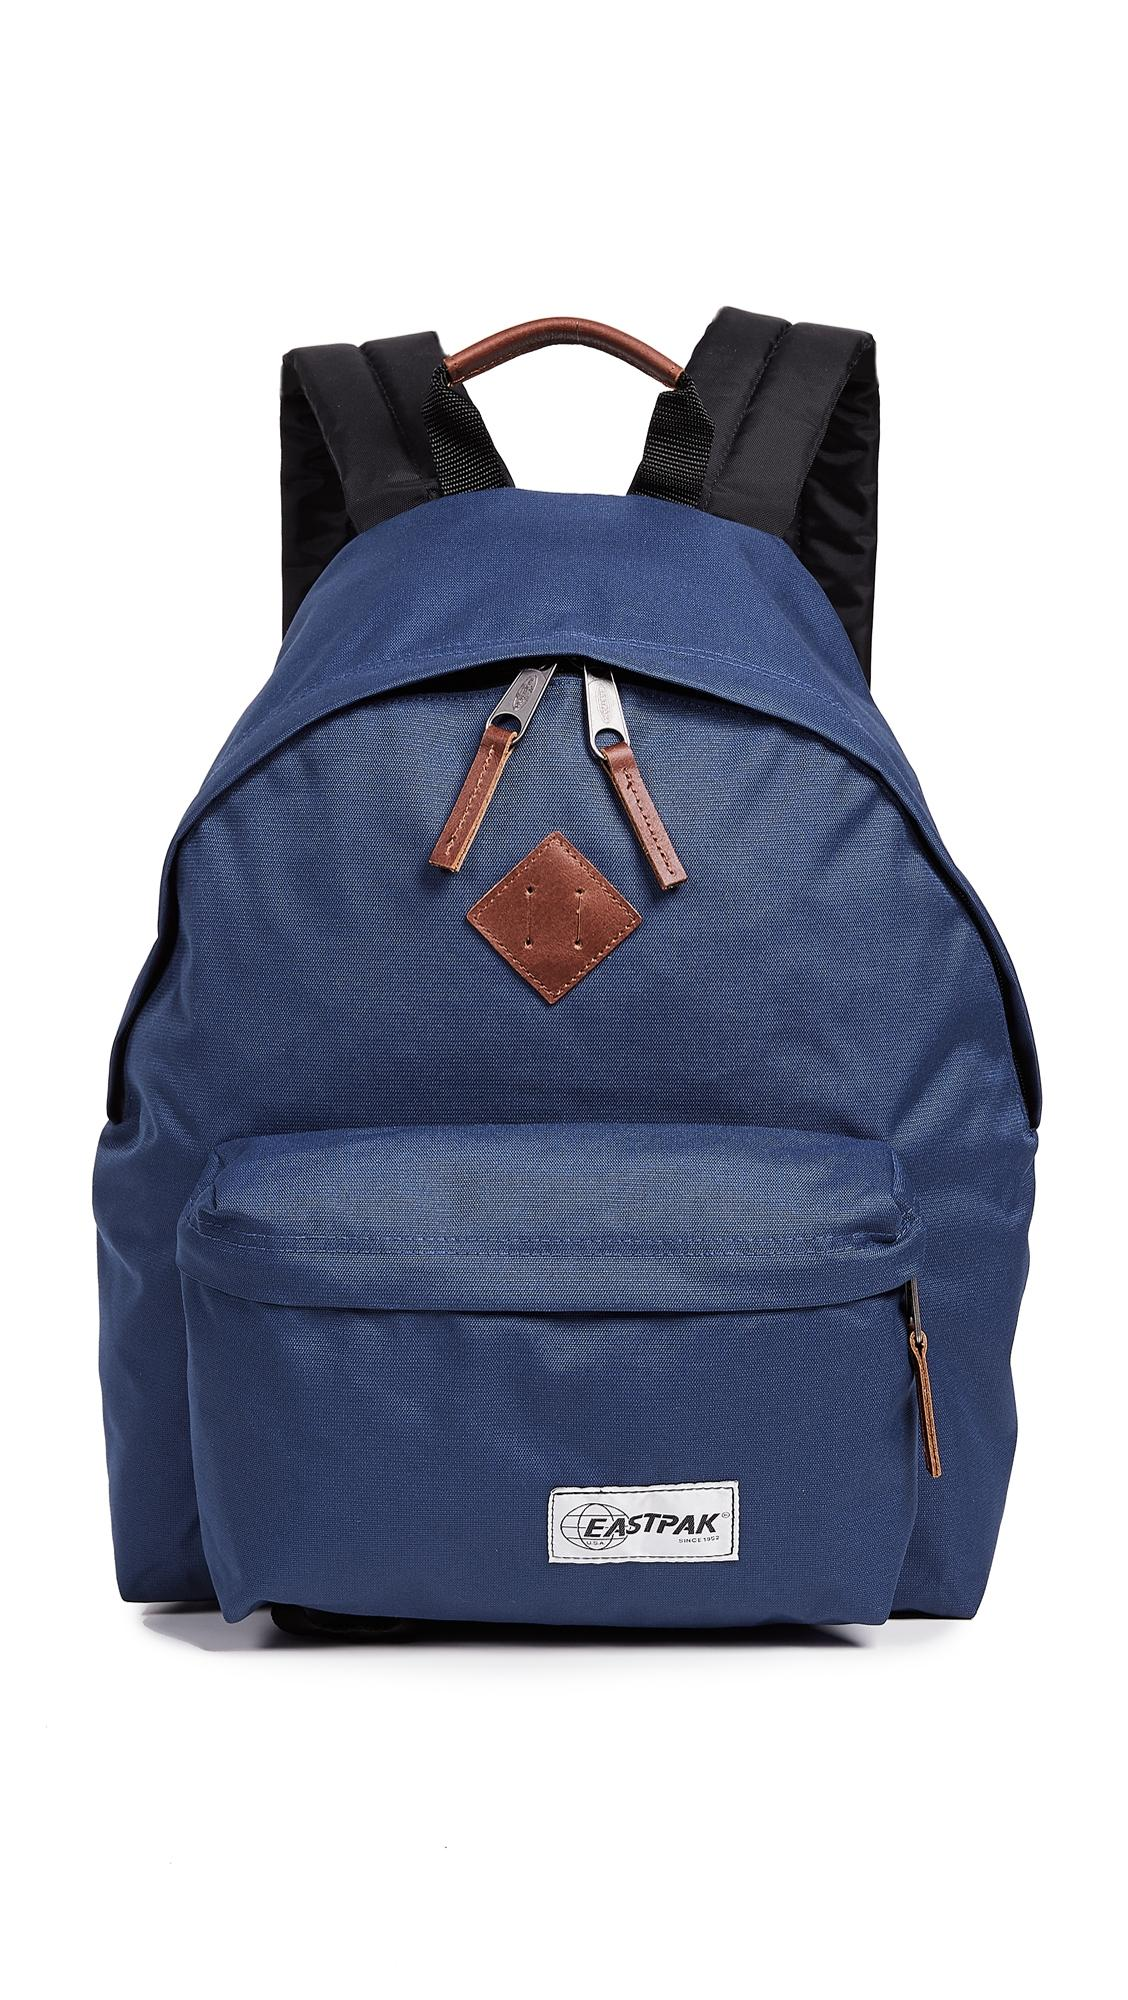 253154c603 Eastpak Padded Pak R Backpack In Into Tan Navy